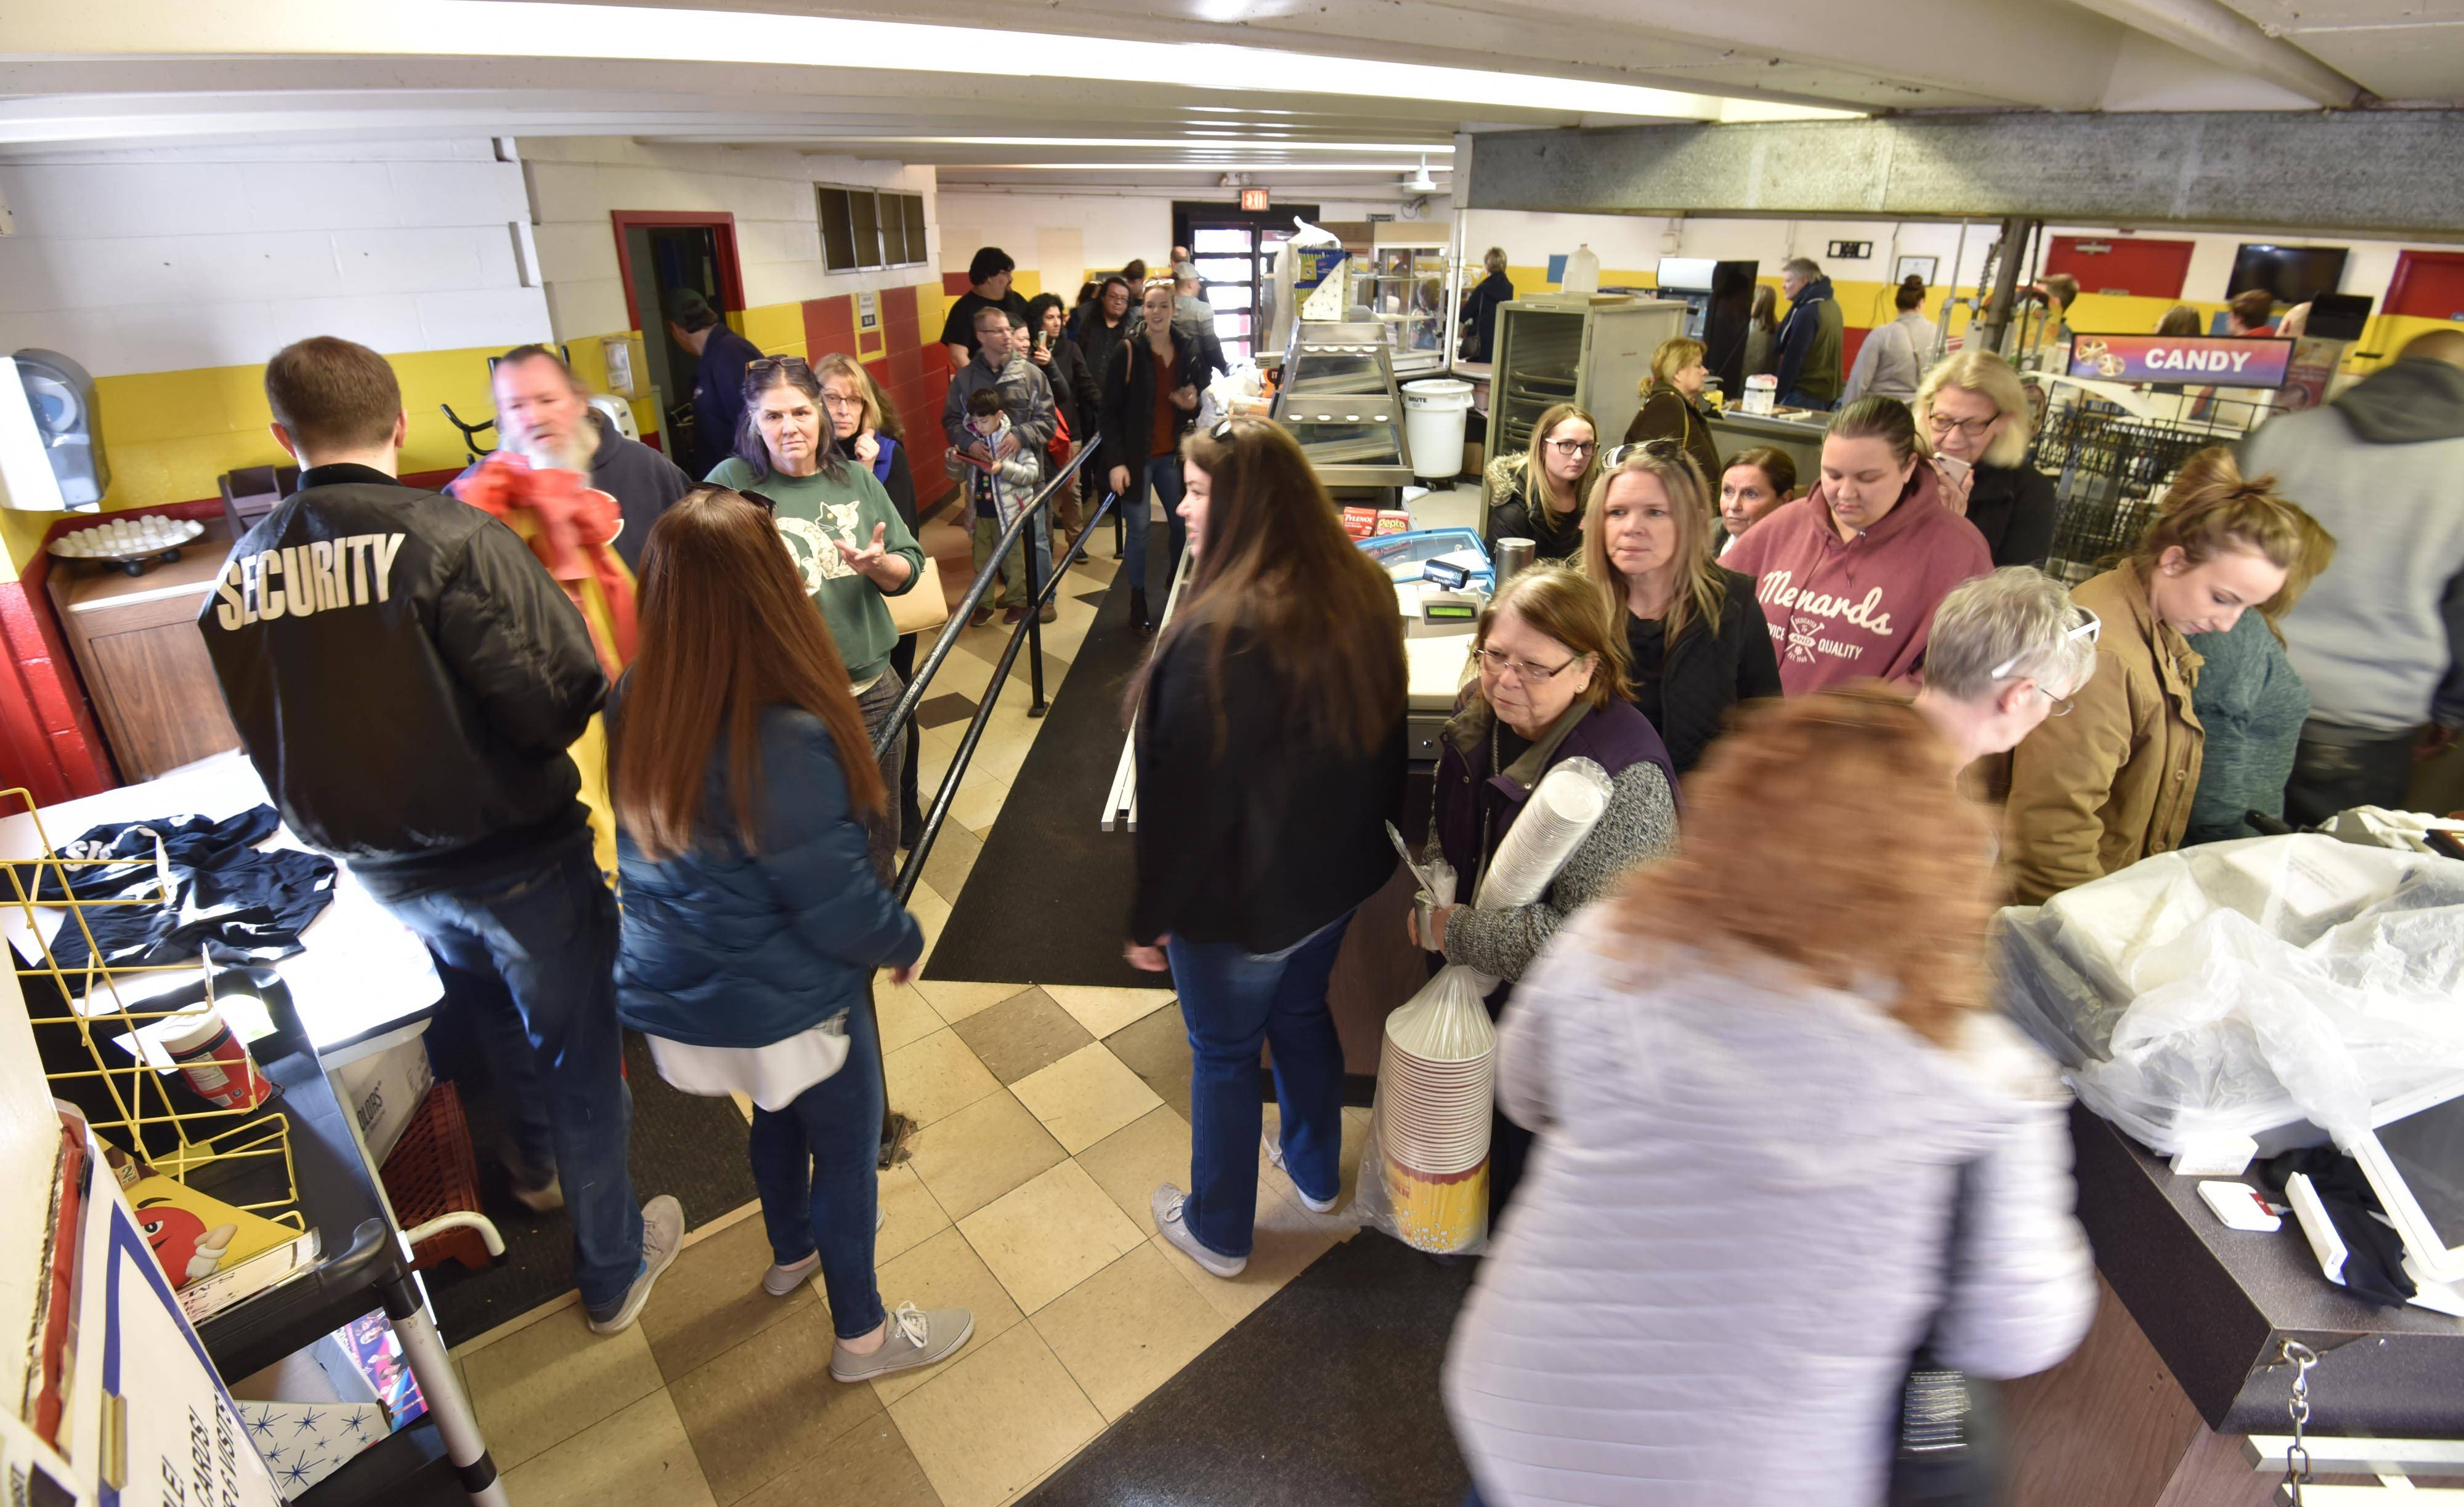 People wandered around the concession stand Saturday hoping to take home a piece of nostalgia at the Cascade Drive-In theater in West Chicago. The business is closing after 57 years.